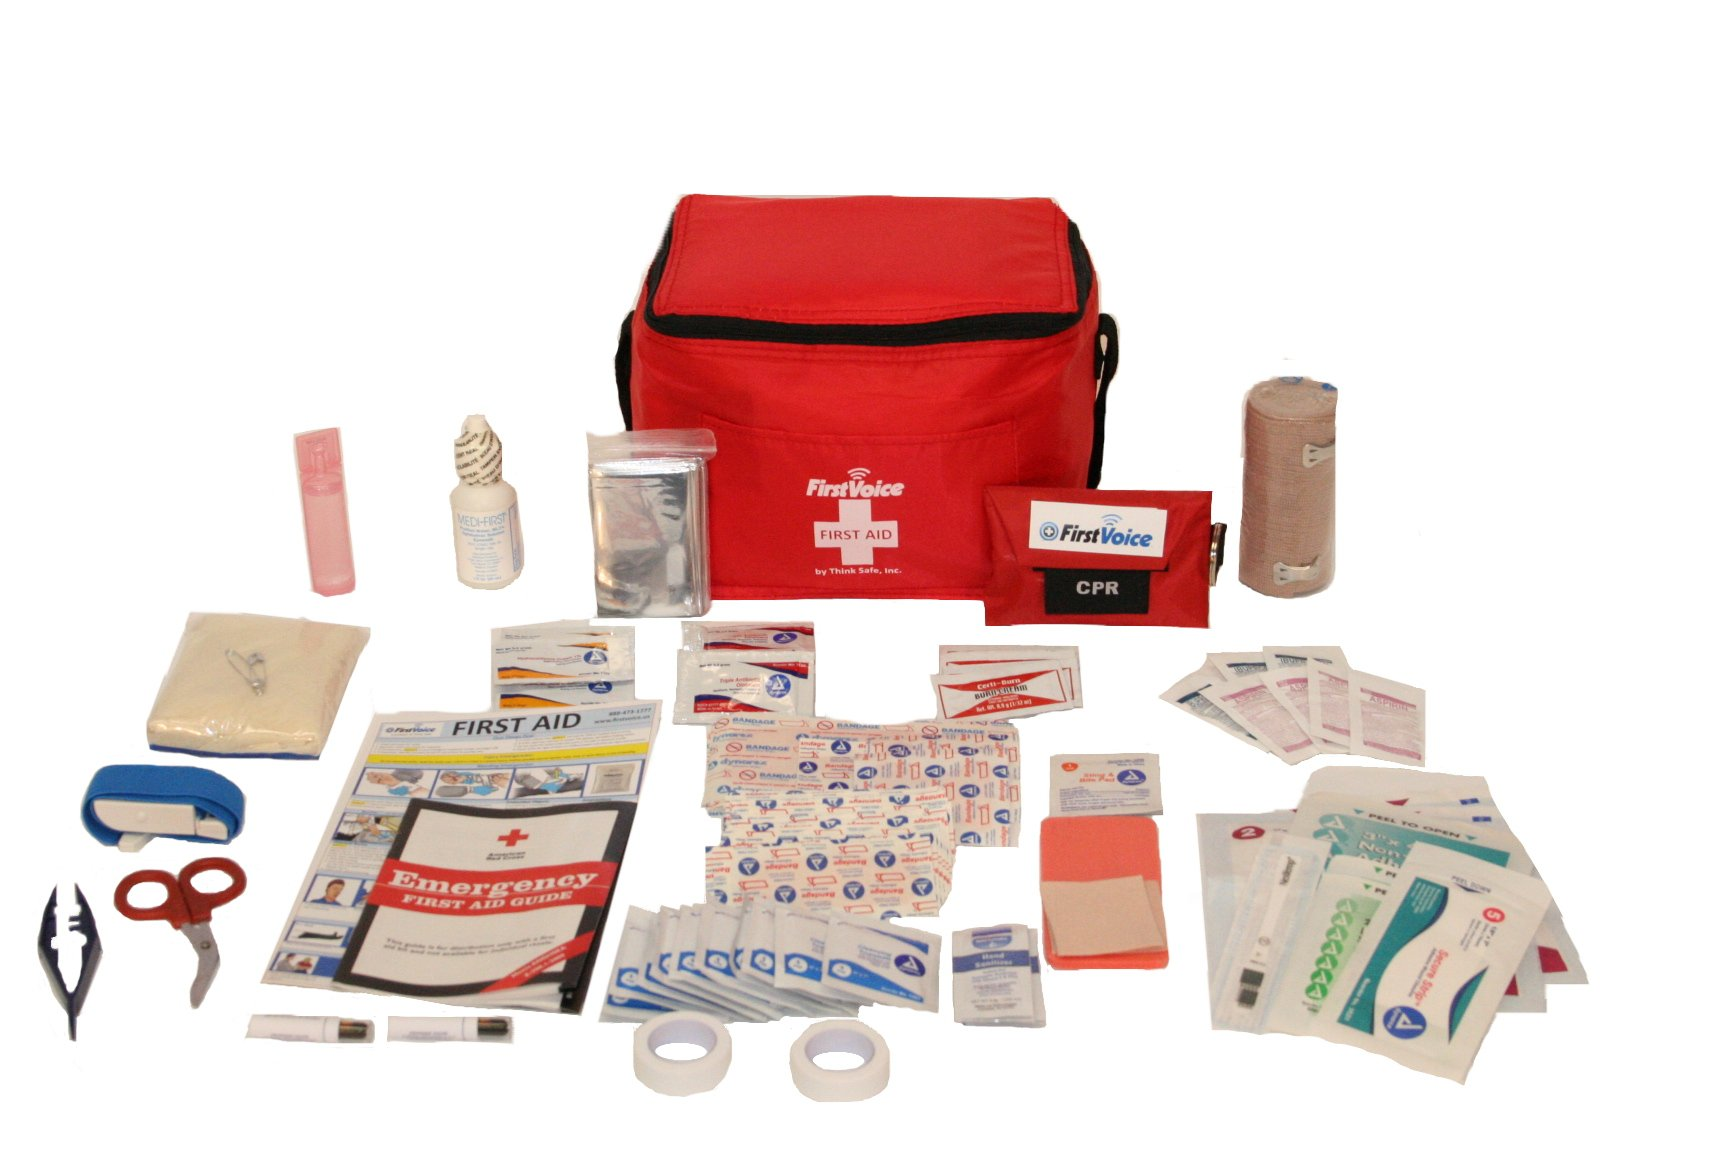 First Voice HIKE01 Hiker and Adventurer Basic First Aid Kit by First Voice (Image #1)